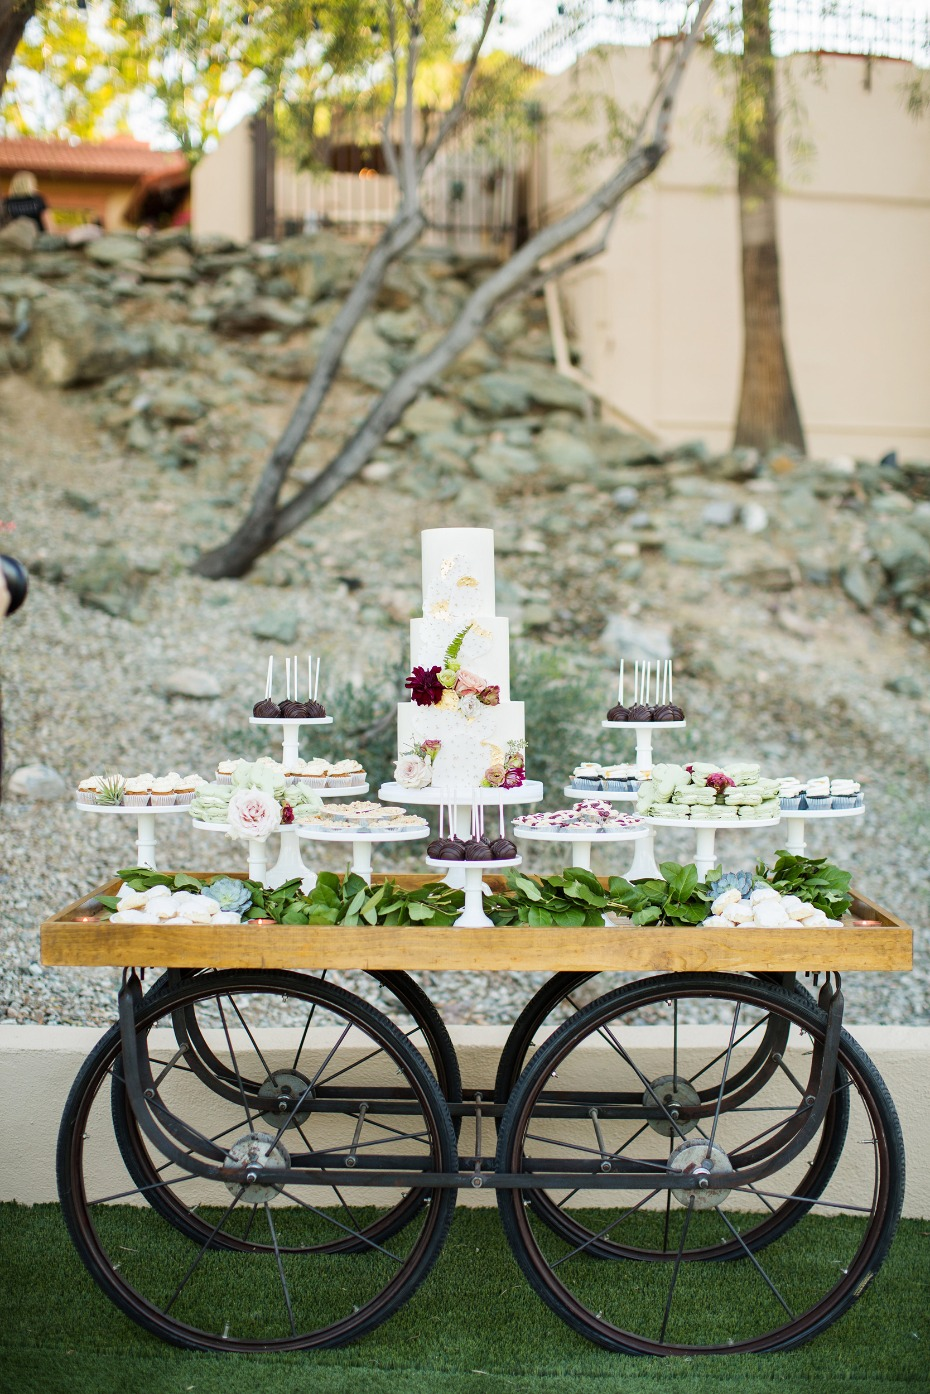 Gorgeous dessert cart